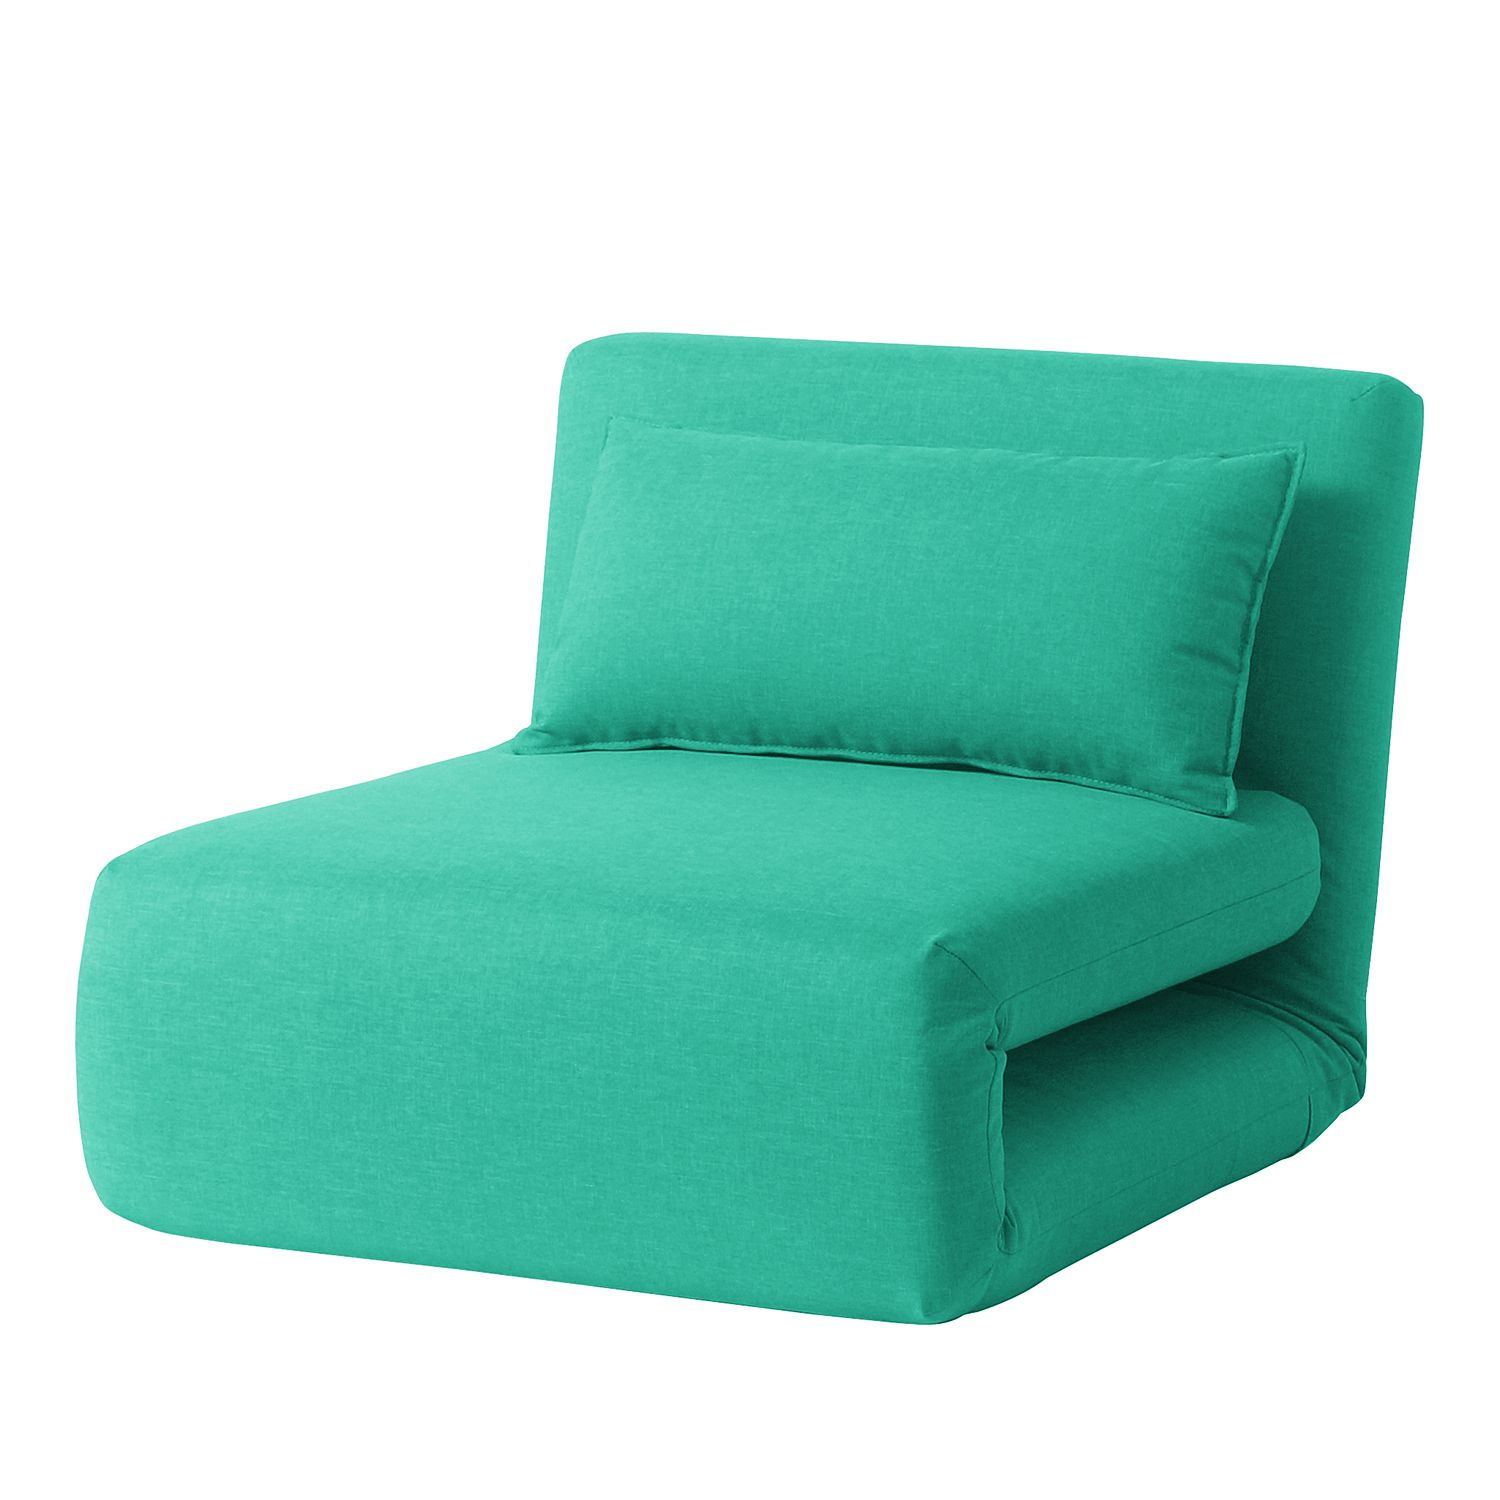 Fauteuil convertible Carmack I Tissu - Turquoise, Fredriks